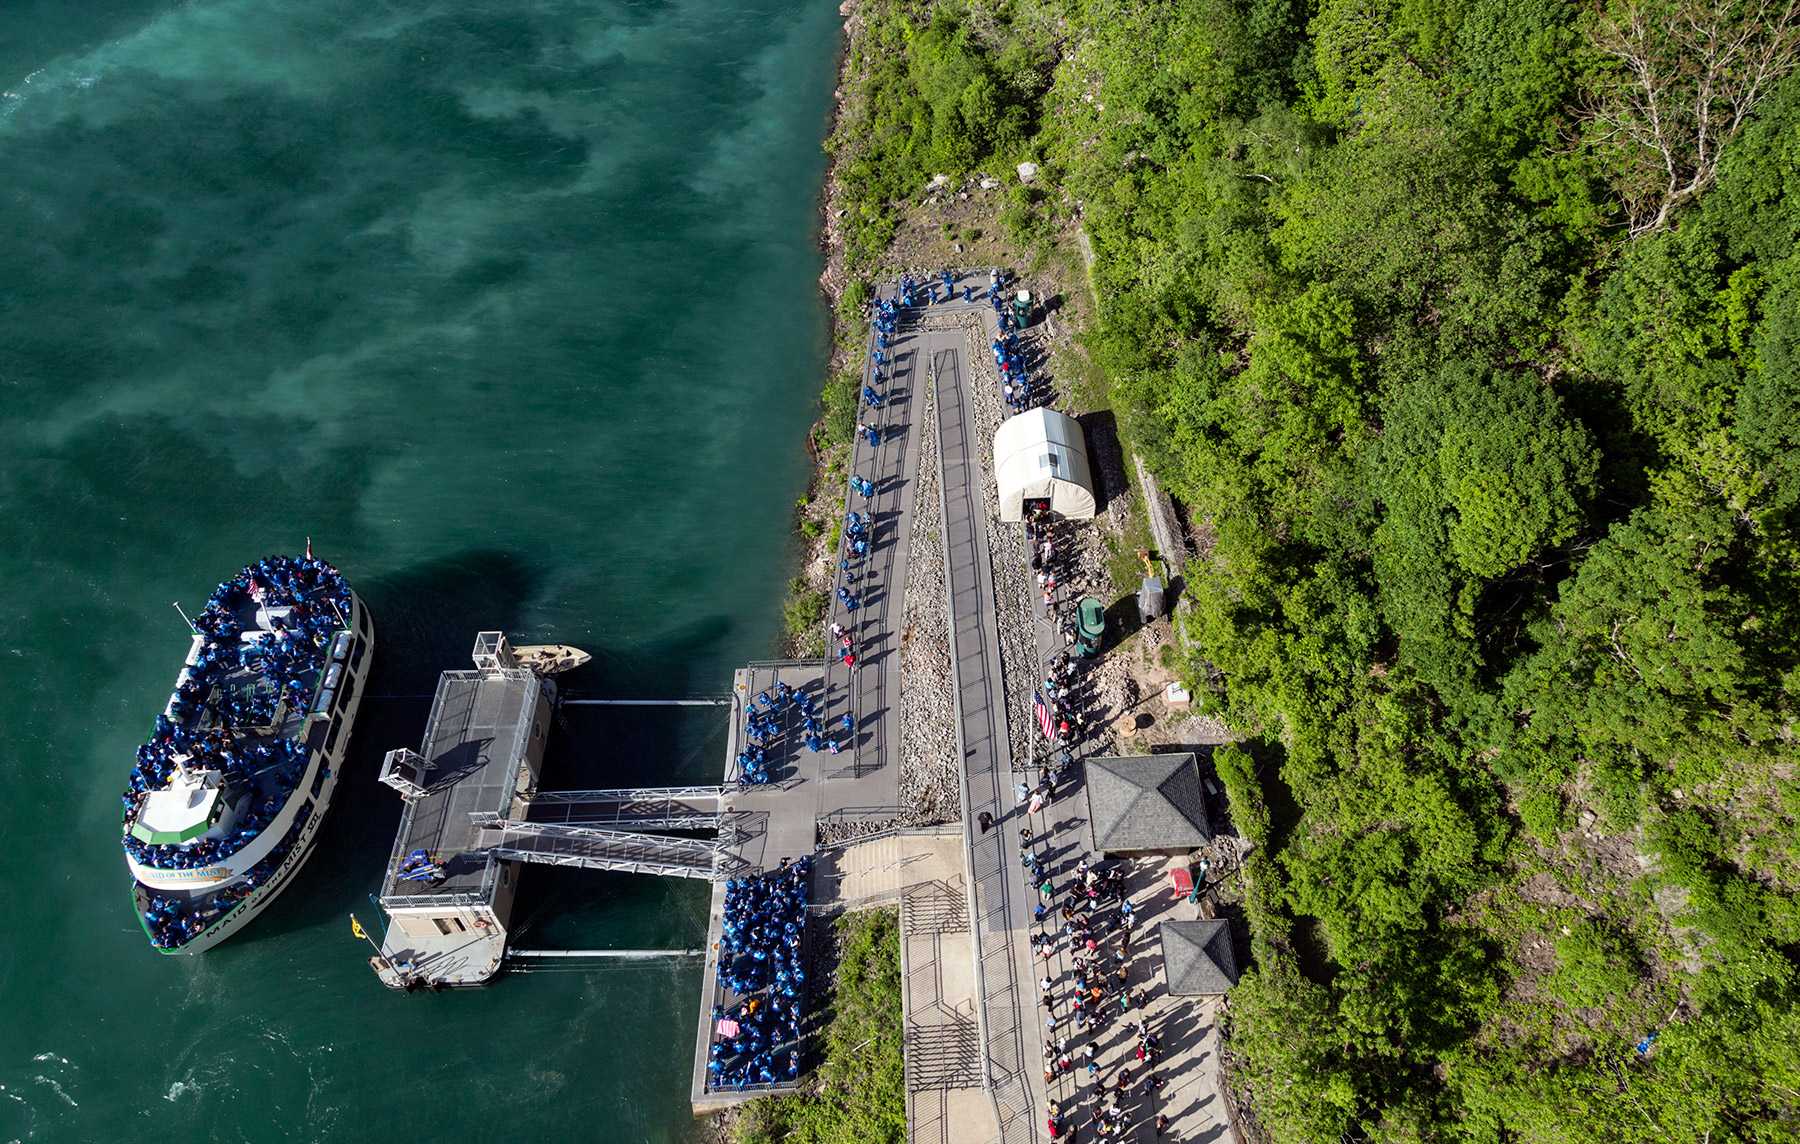 20150626. A sky view of getting ready to ride the Maid of the Mi